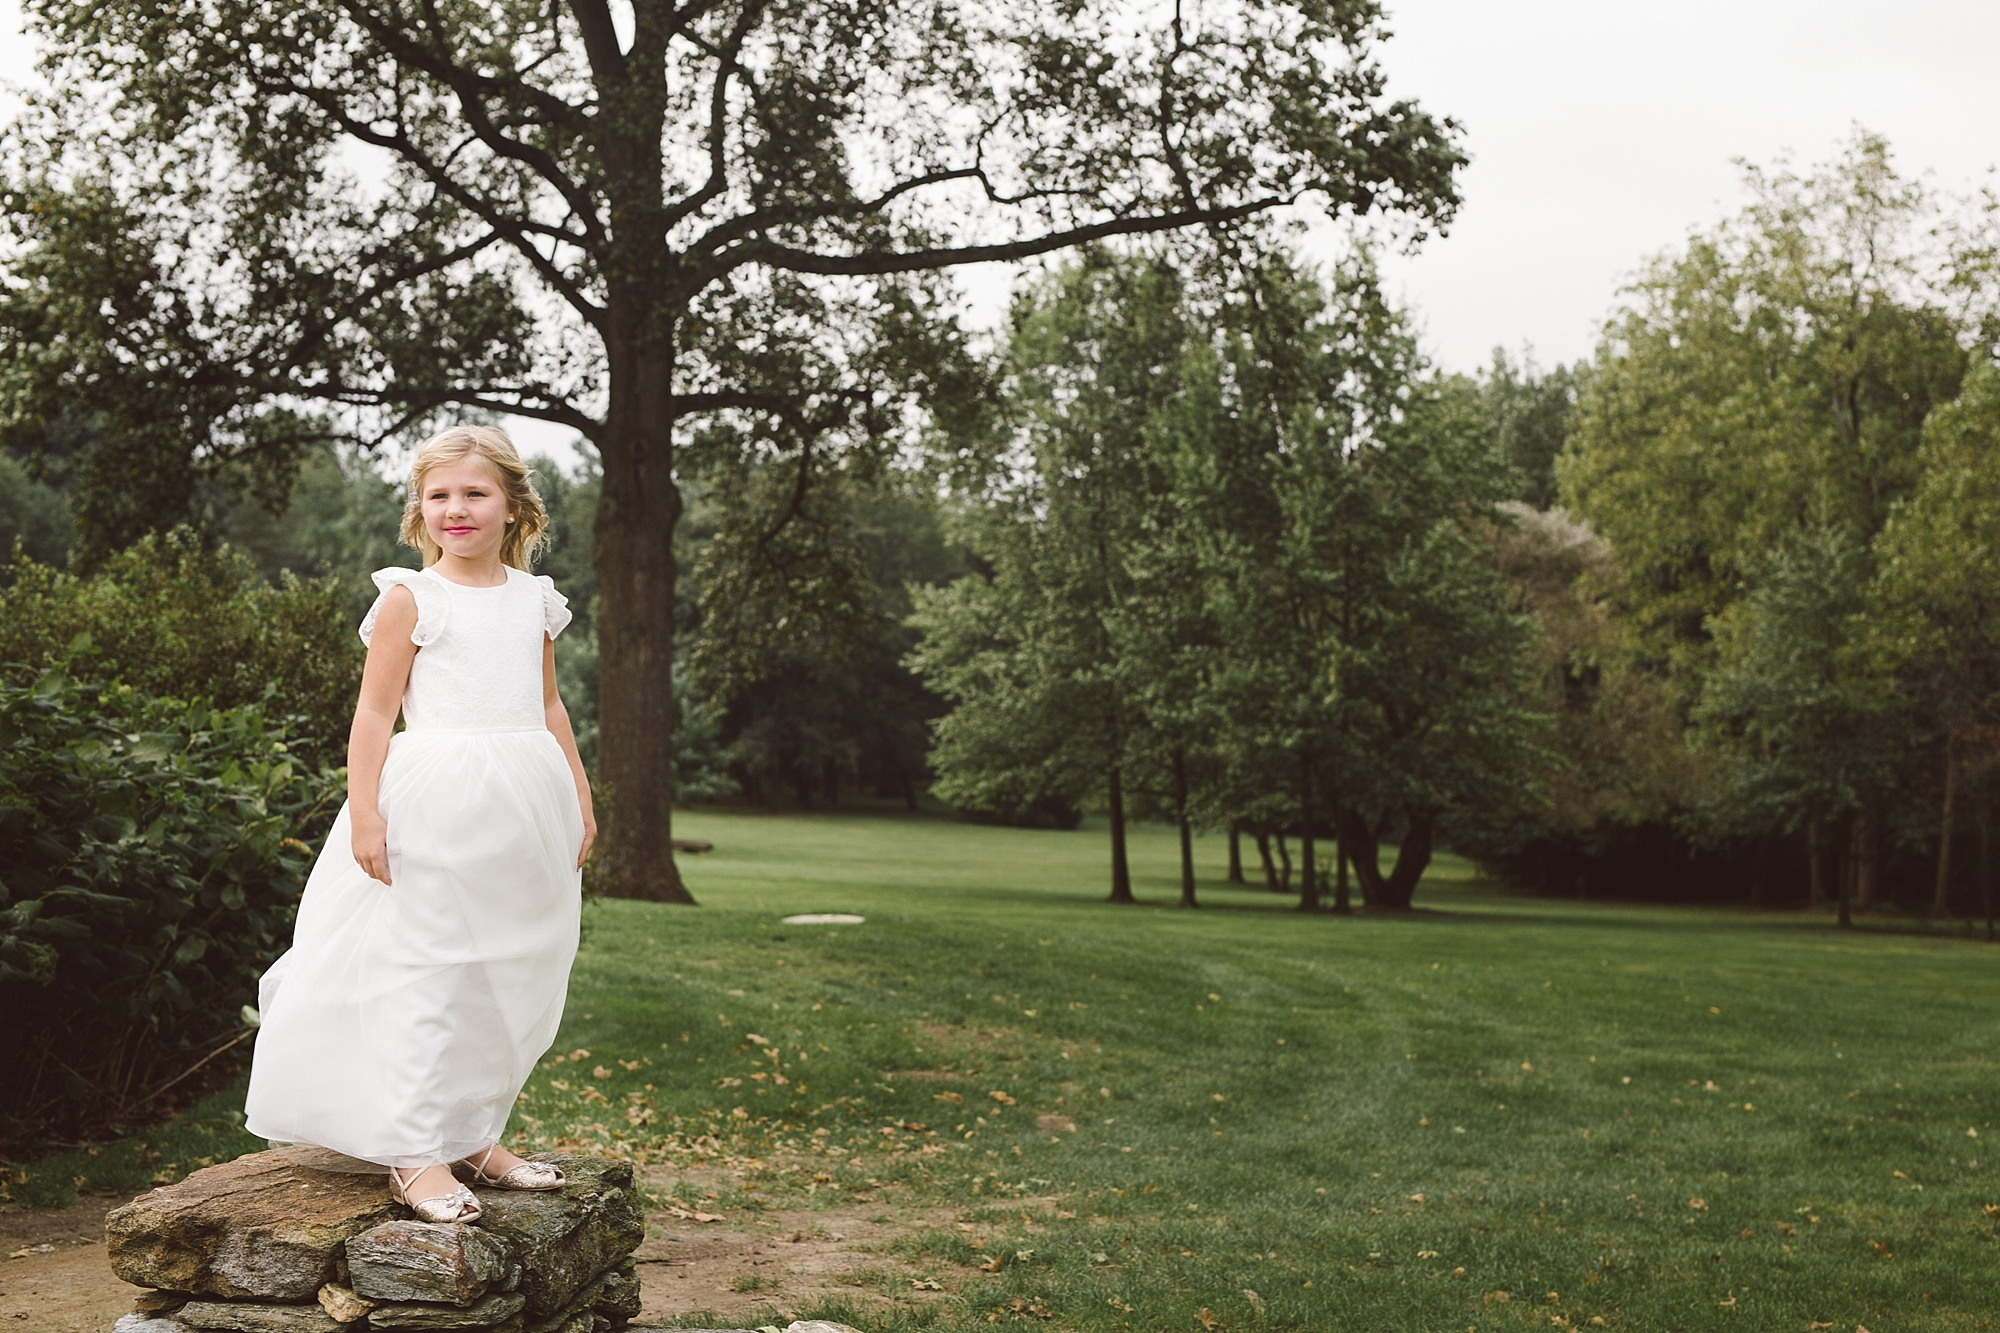 Druemore_Joe_Mac_Creative_Philadelphila_Wedding_Photography_drumore_estate_pequea_Best_lancaster_wedding_venues_0023.jpg